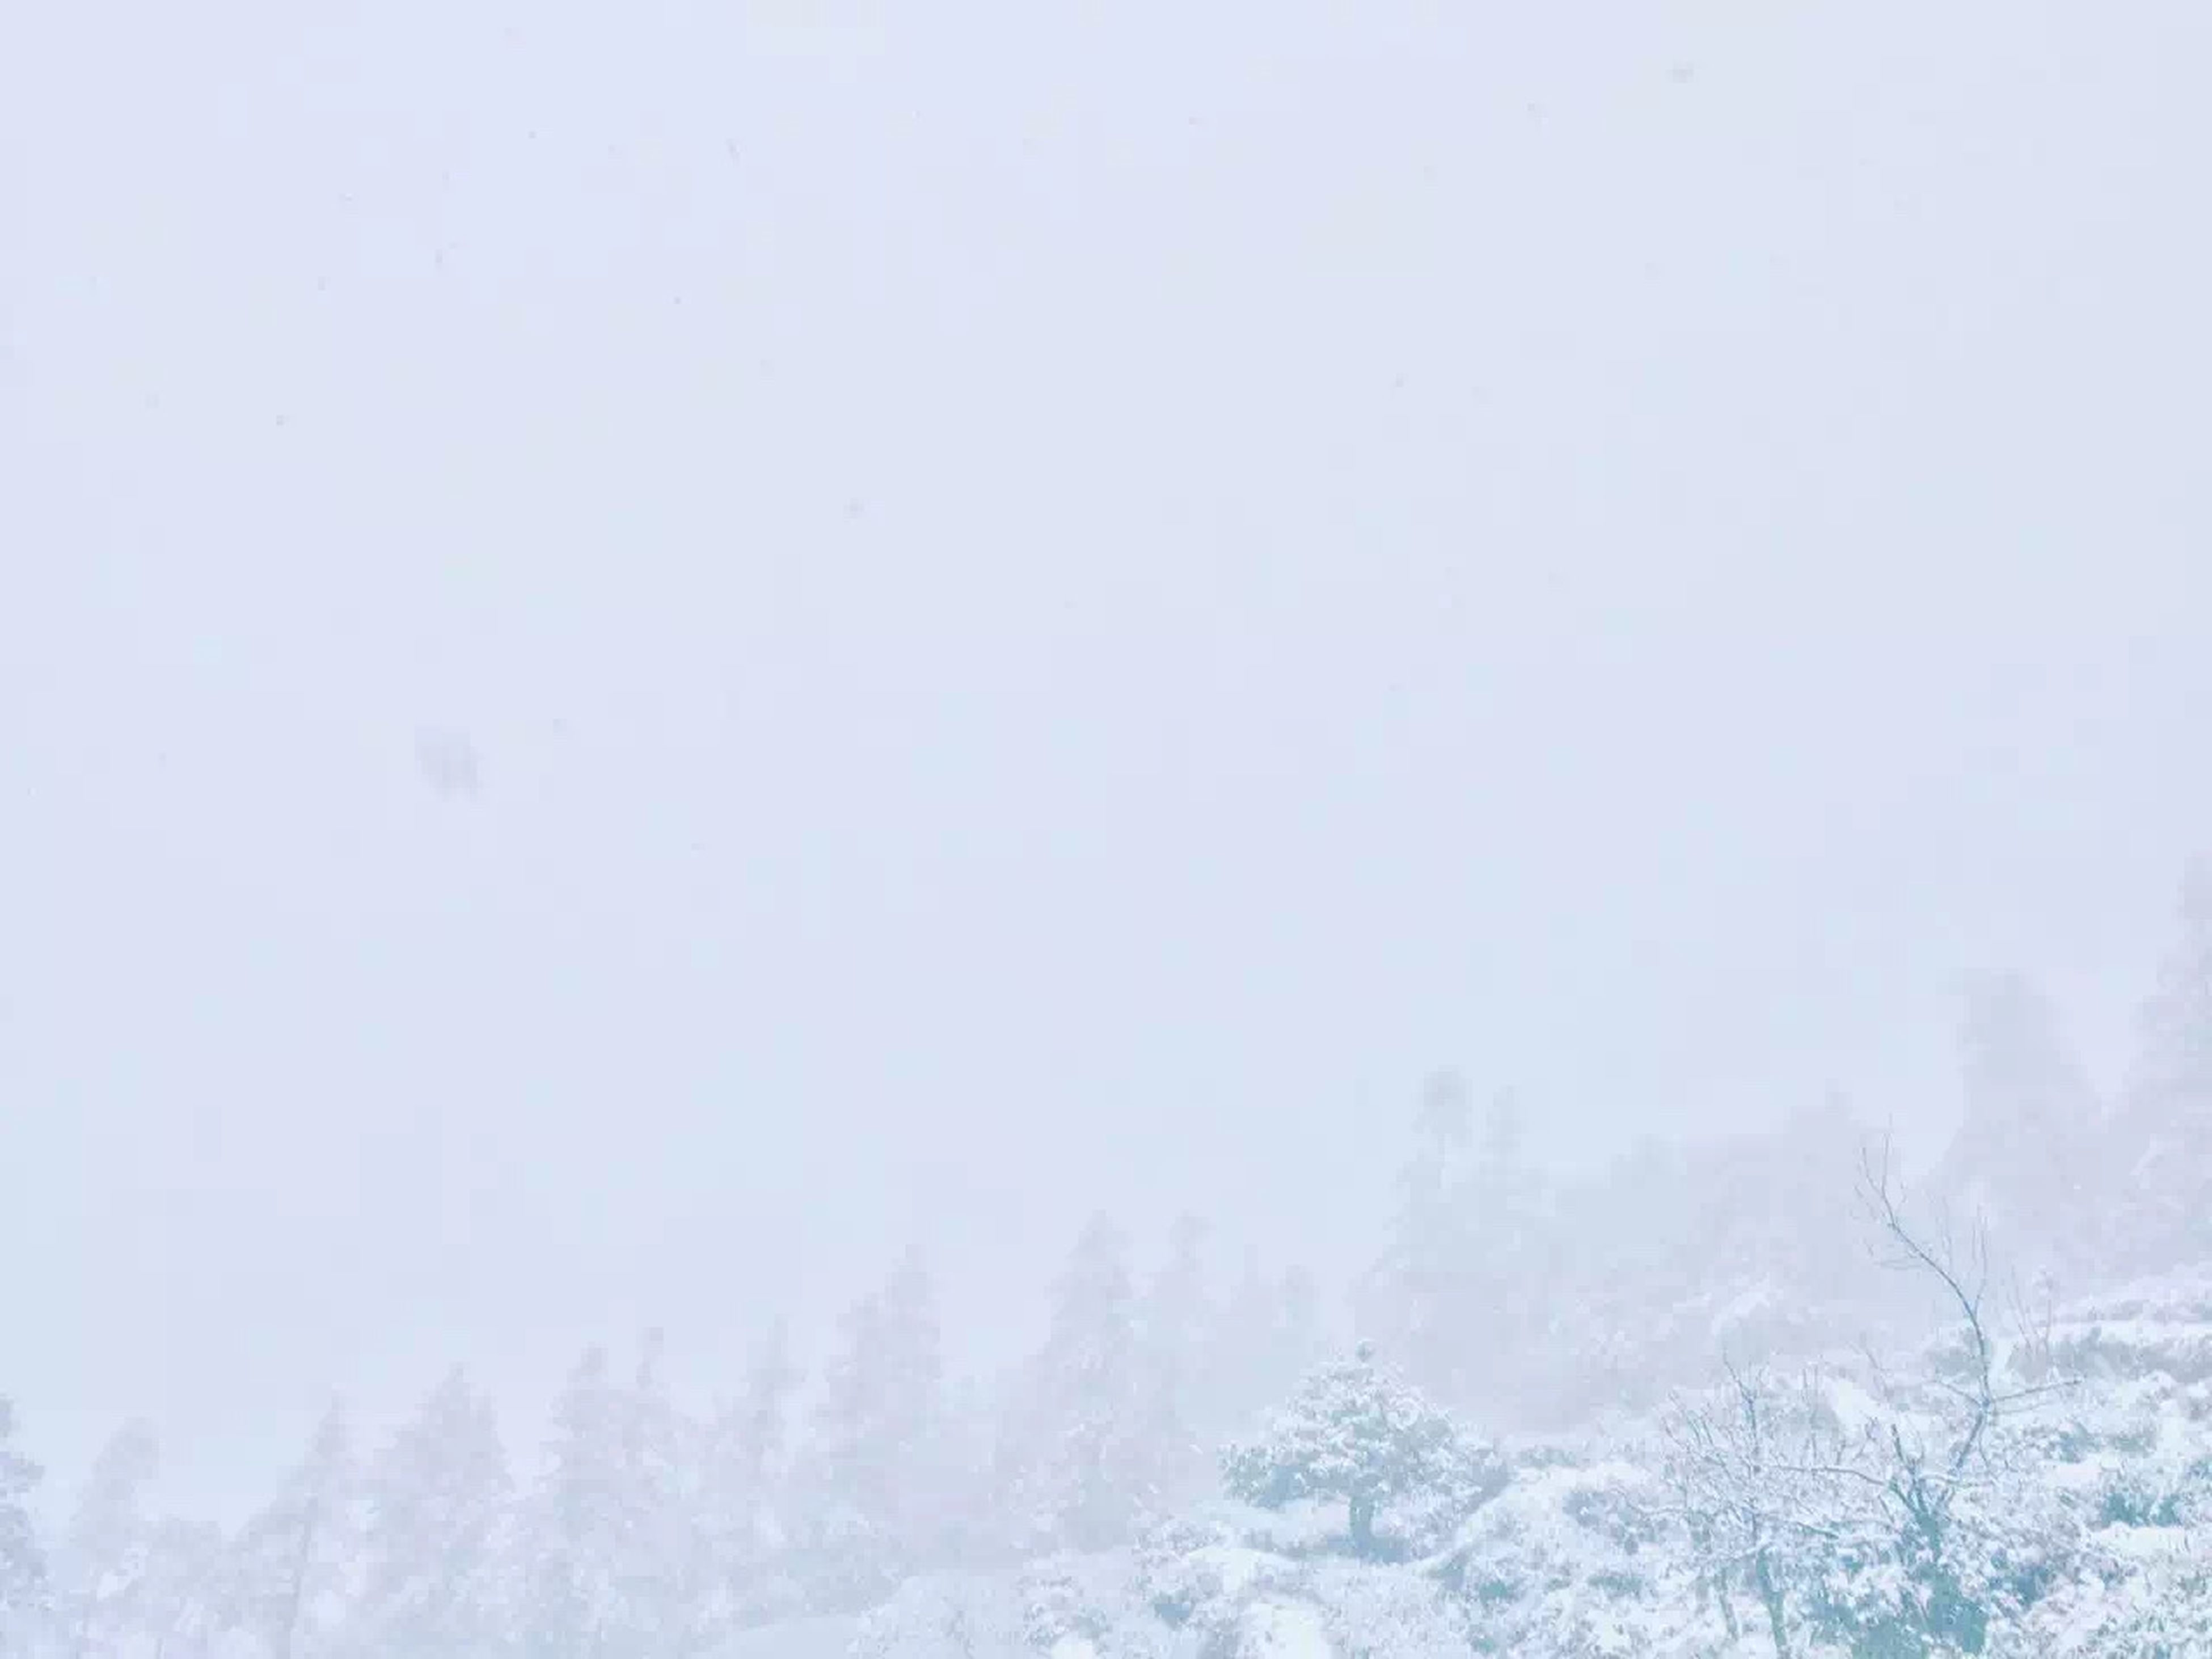 winter, cold temperature, snow, season, weather, covering, frozen, beauty in nature, white color, tranquility, scenics, nature, tranquil scene, clear sky, copy space, covered, tree, non-urban scene, idyllic